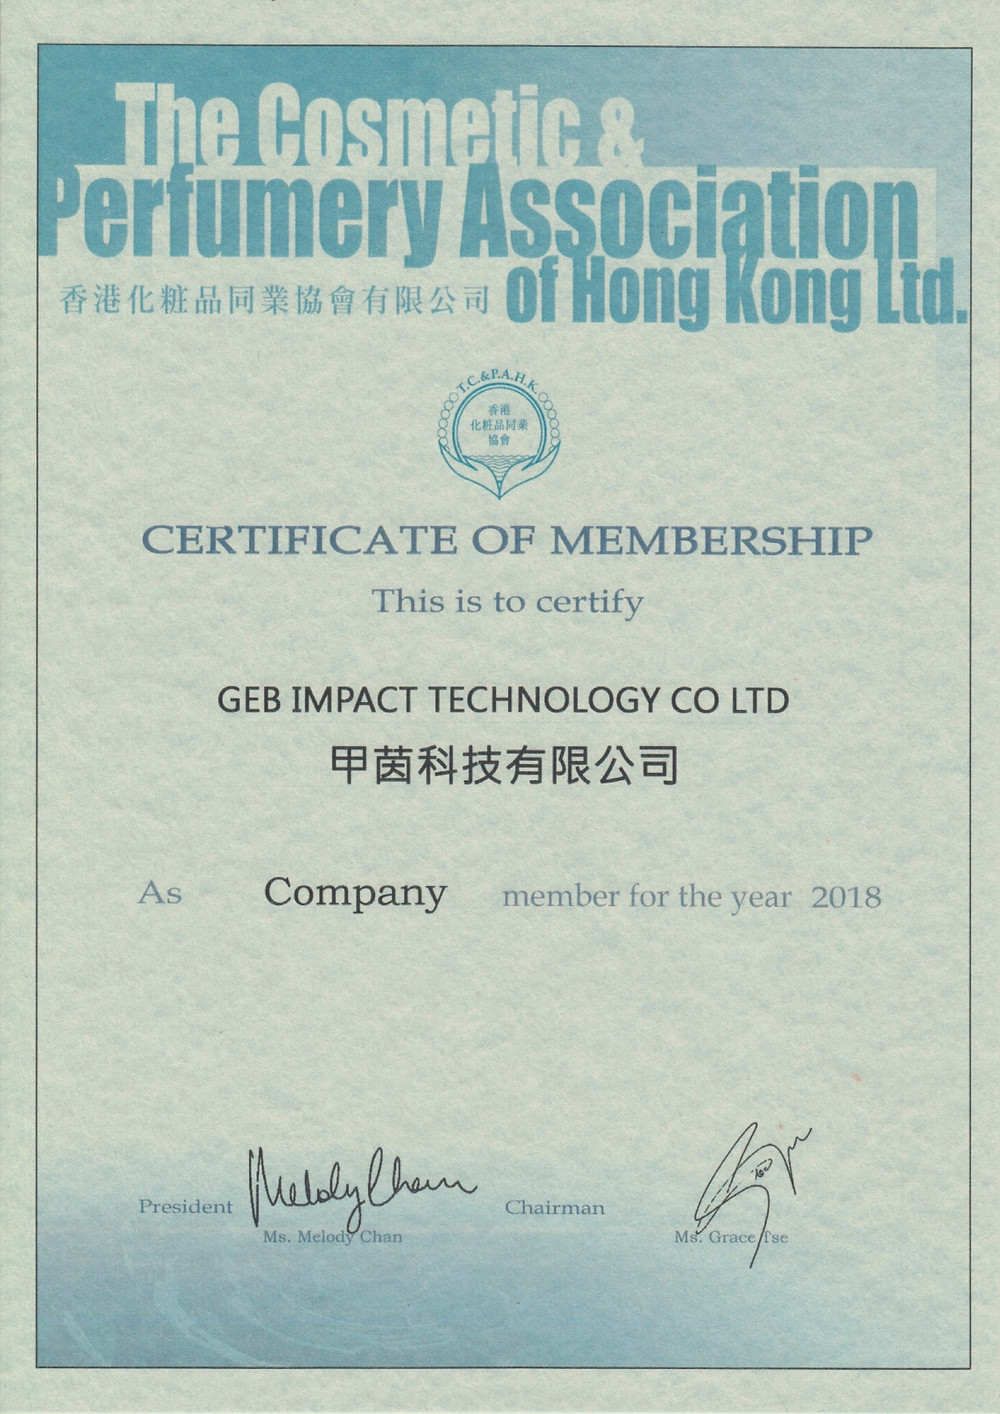 Cert of membership from the Cosmetic & Perfumery Association of HK